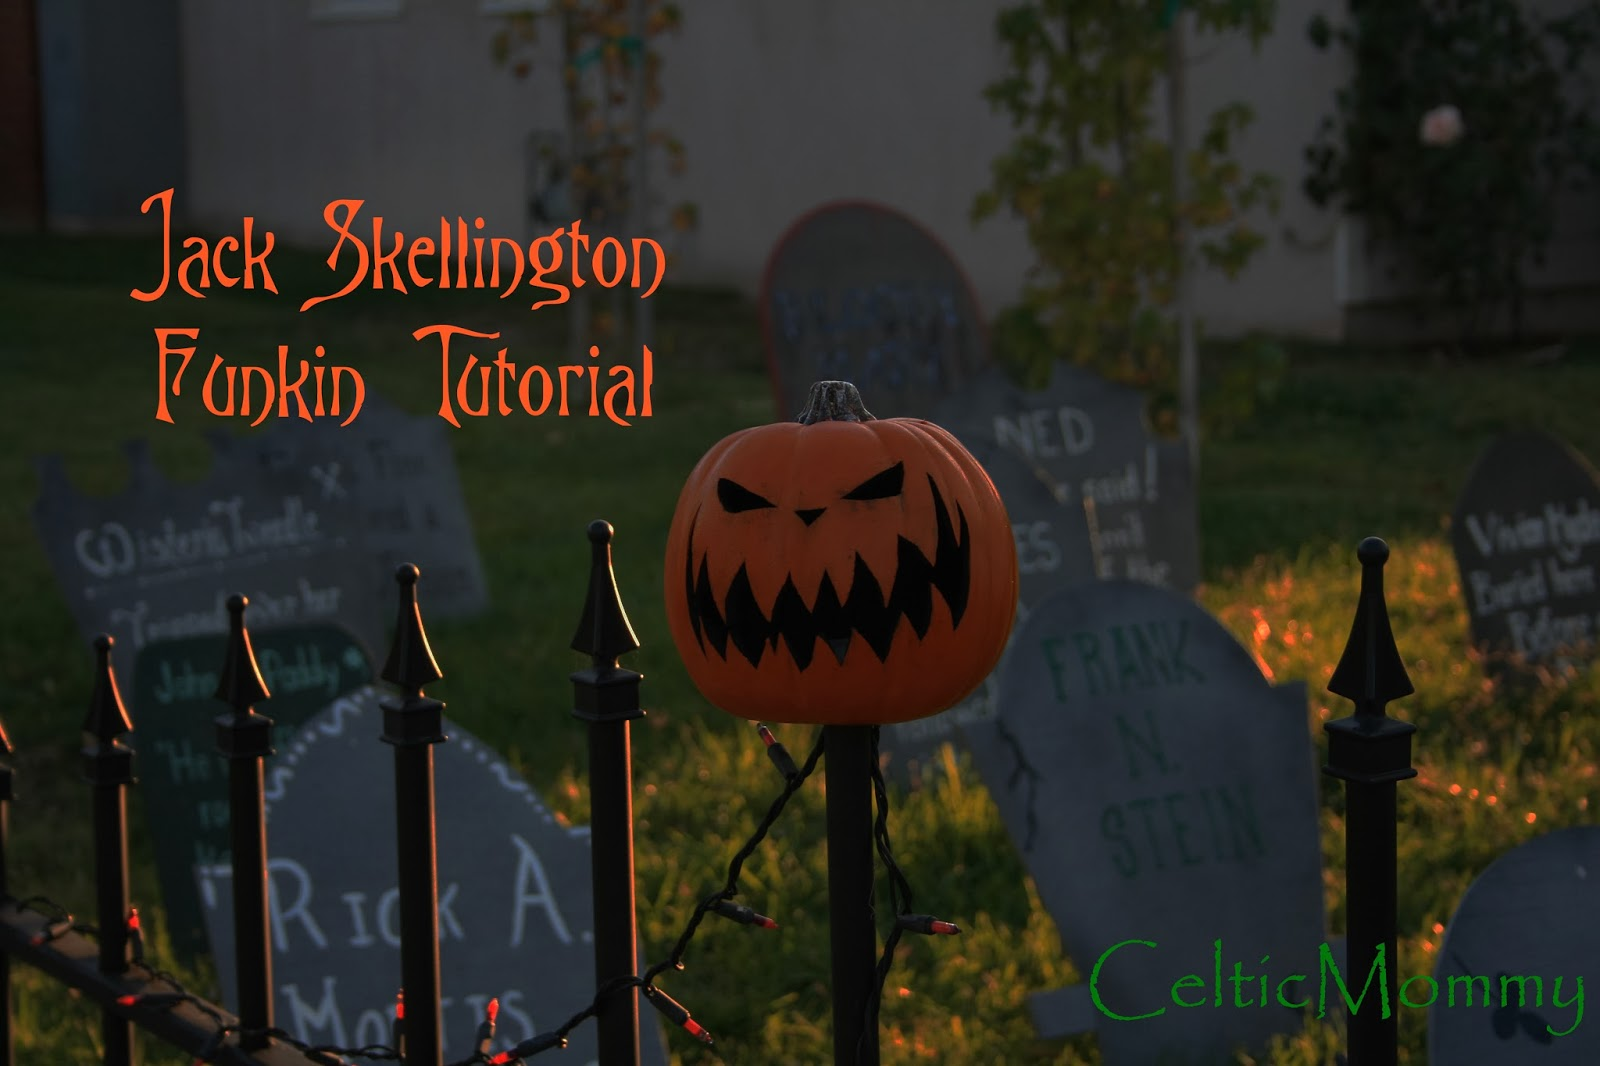 CelticMommy: Tutorial: How to make Nightmare Before Christmas Pumpkins